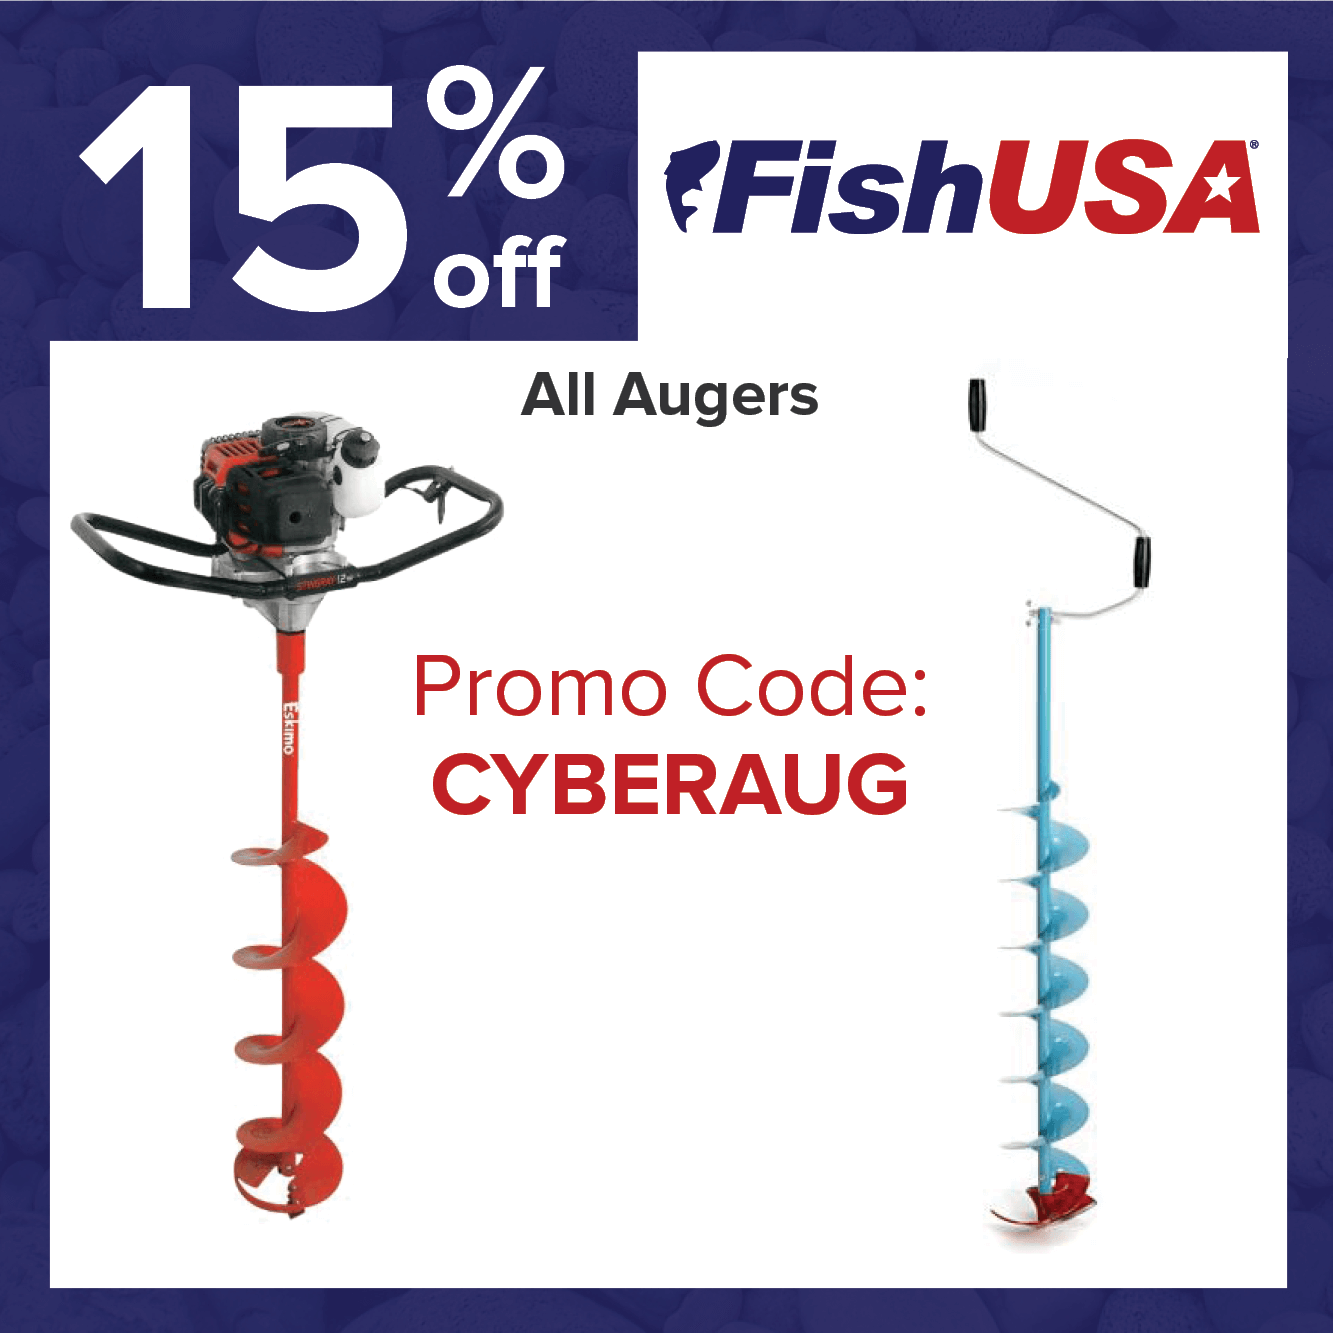 Take 15% off Ice Augers